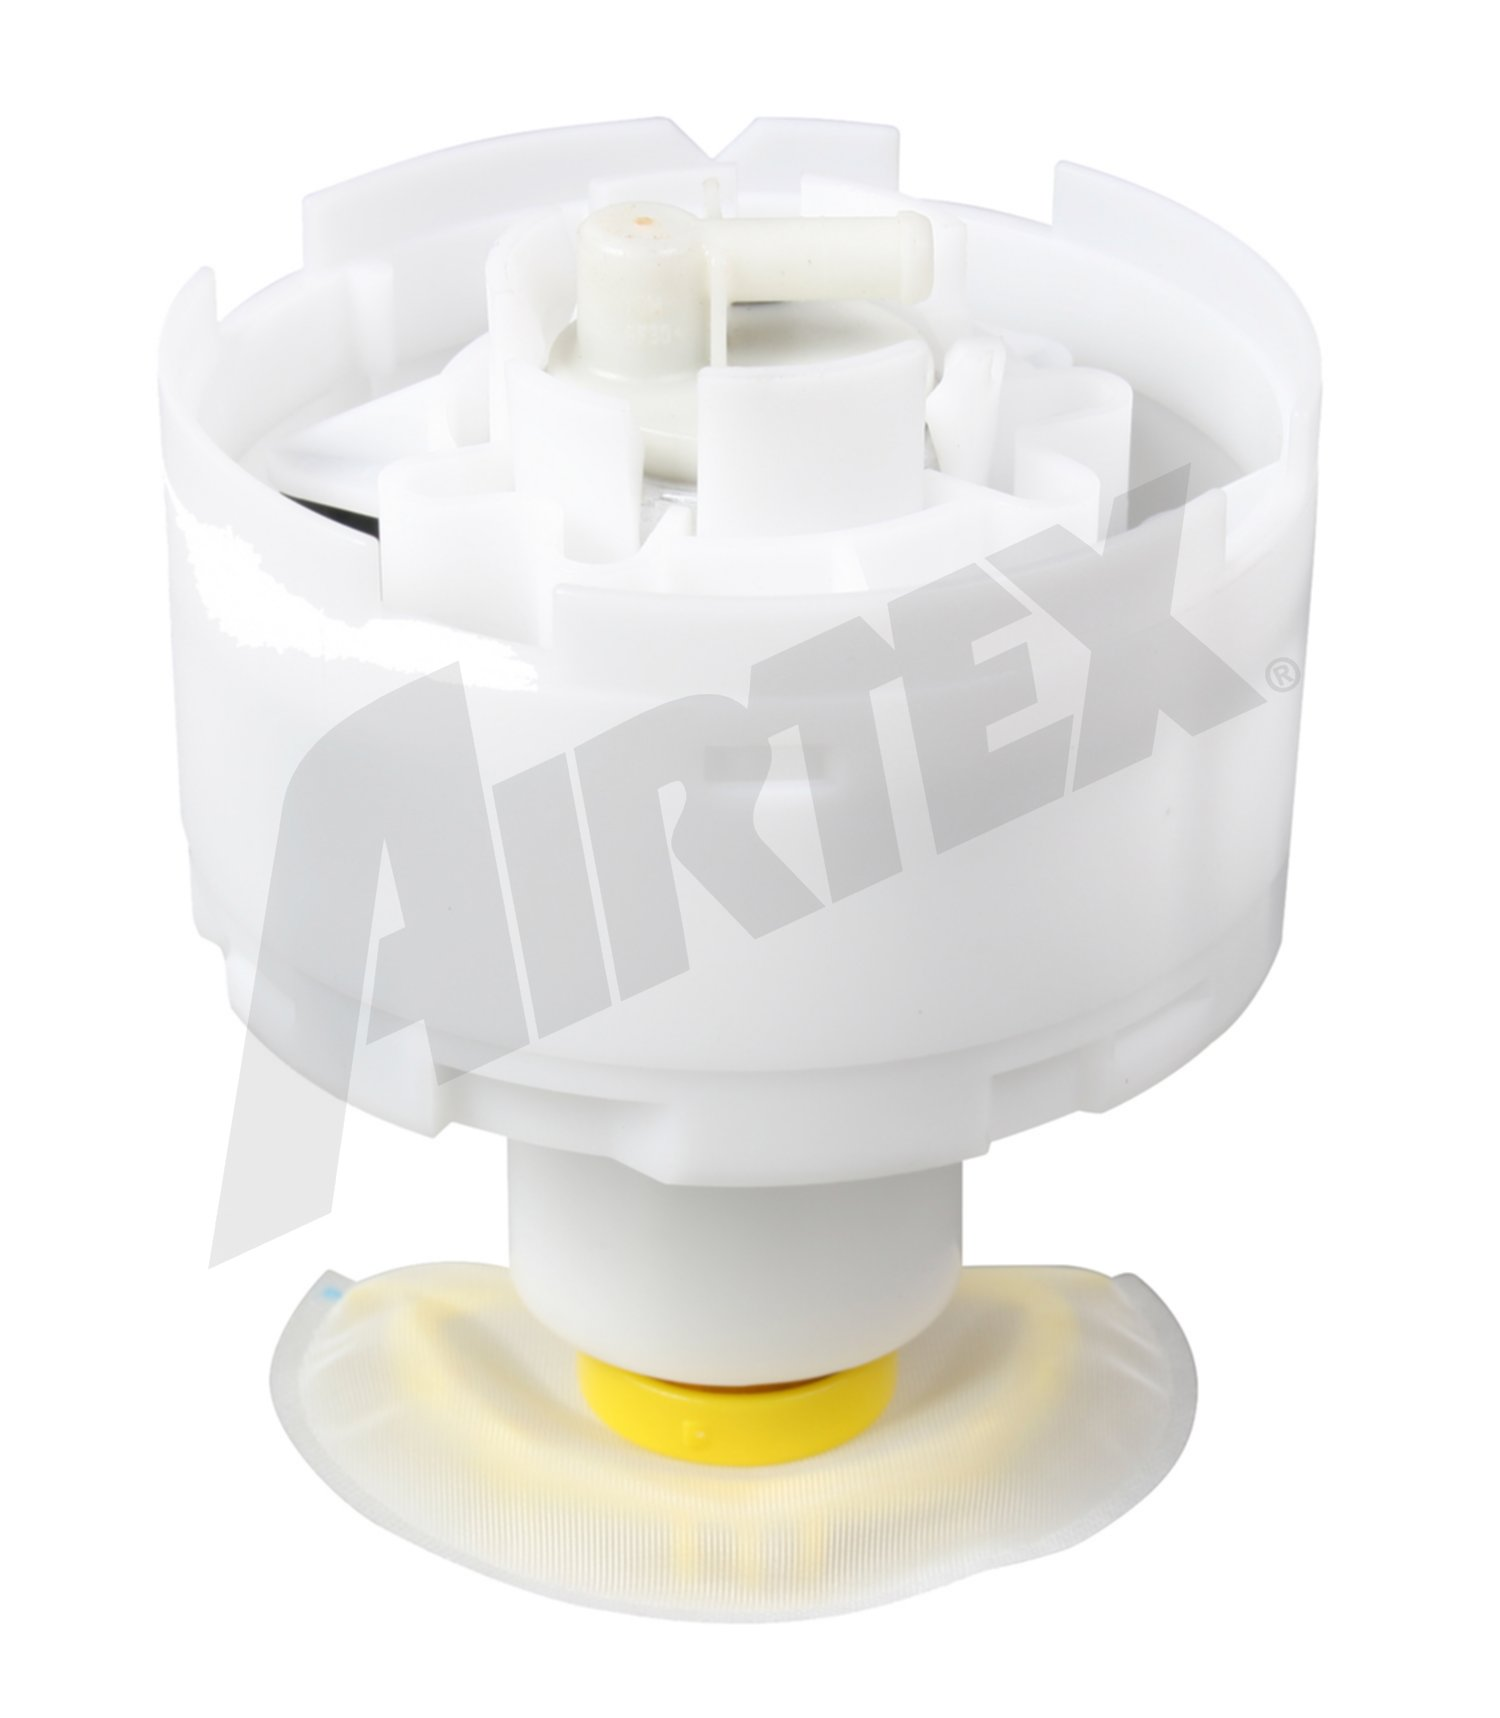 Airtex Fuel Pumps E8368M Fuel Pump Module Assembly Fits 1998-2005 Volkswagen Passat